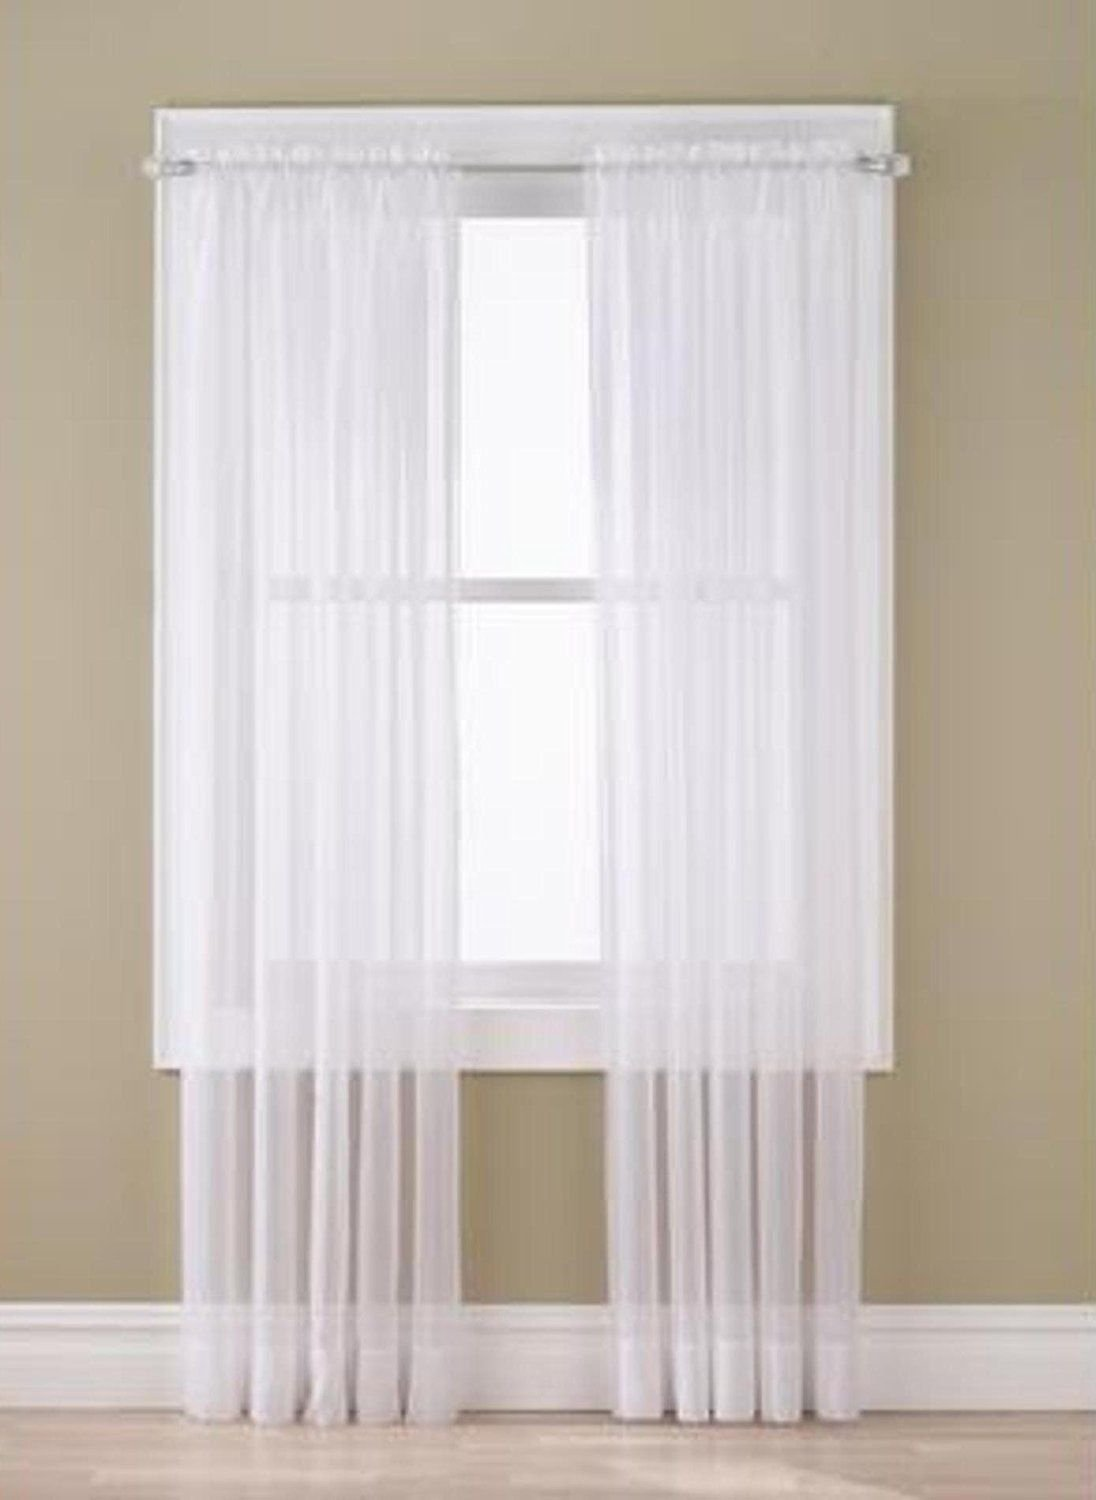 2Pc Solid Sheer Window Drapes Curtains Panel Valance Set 54''X84'' White